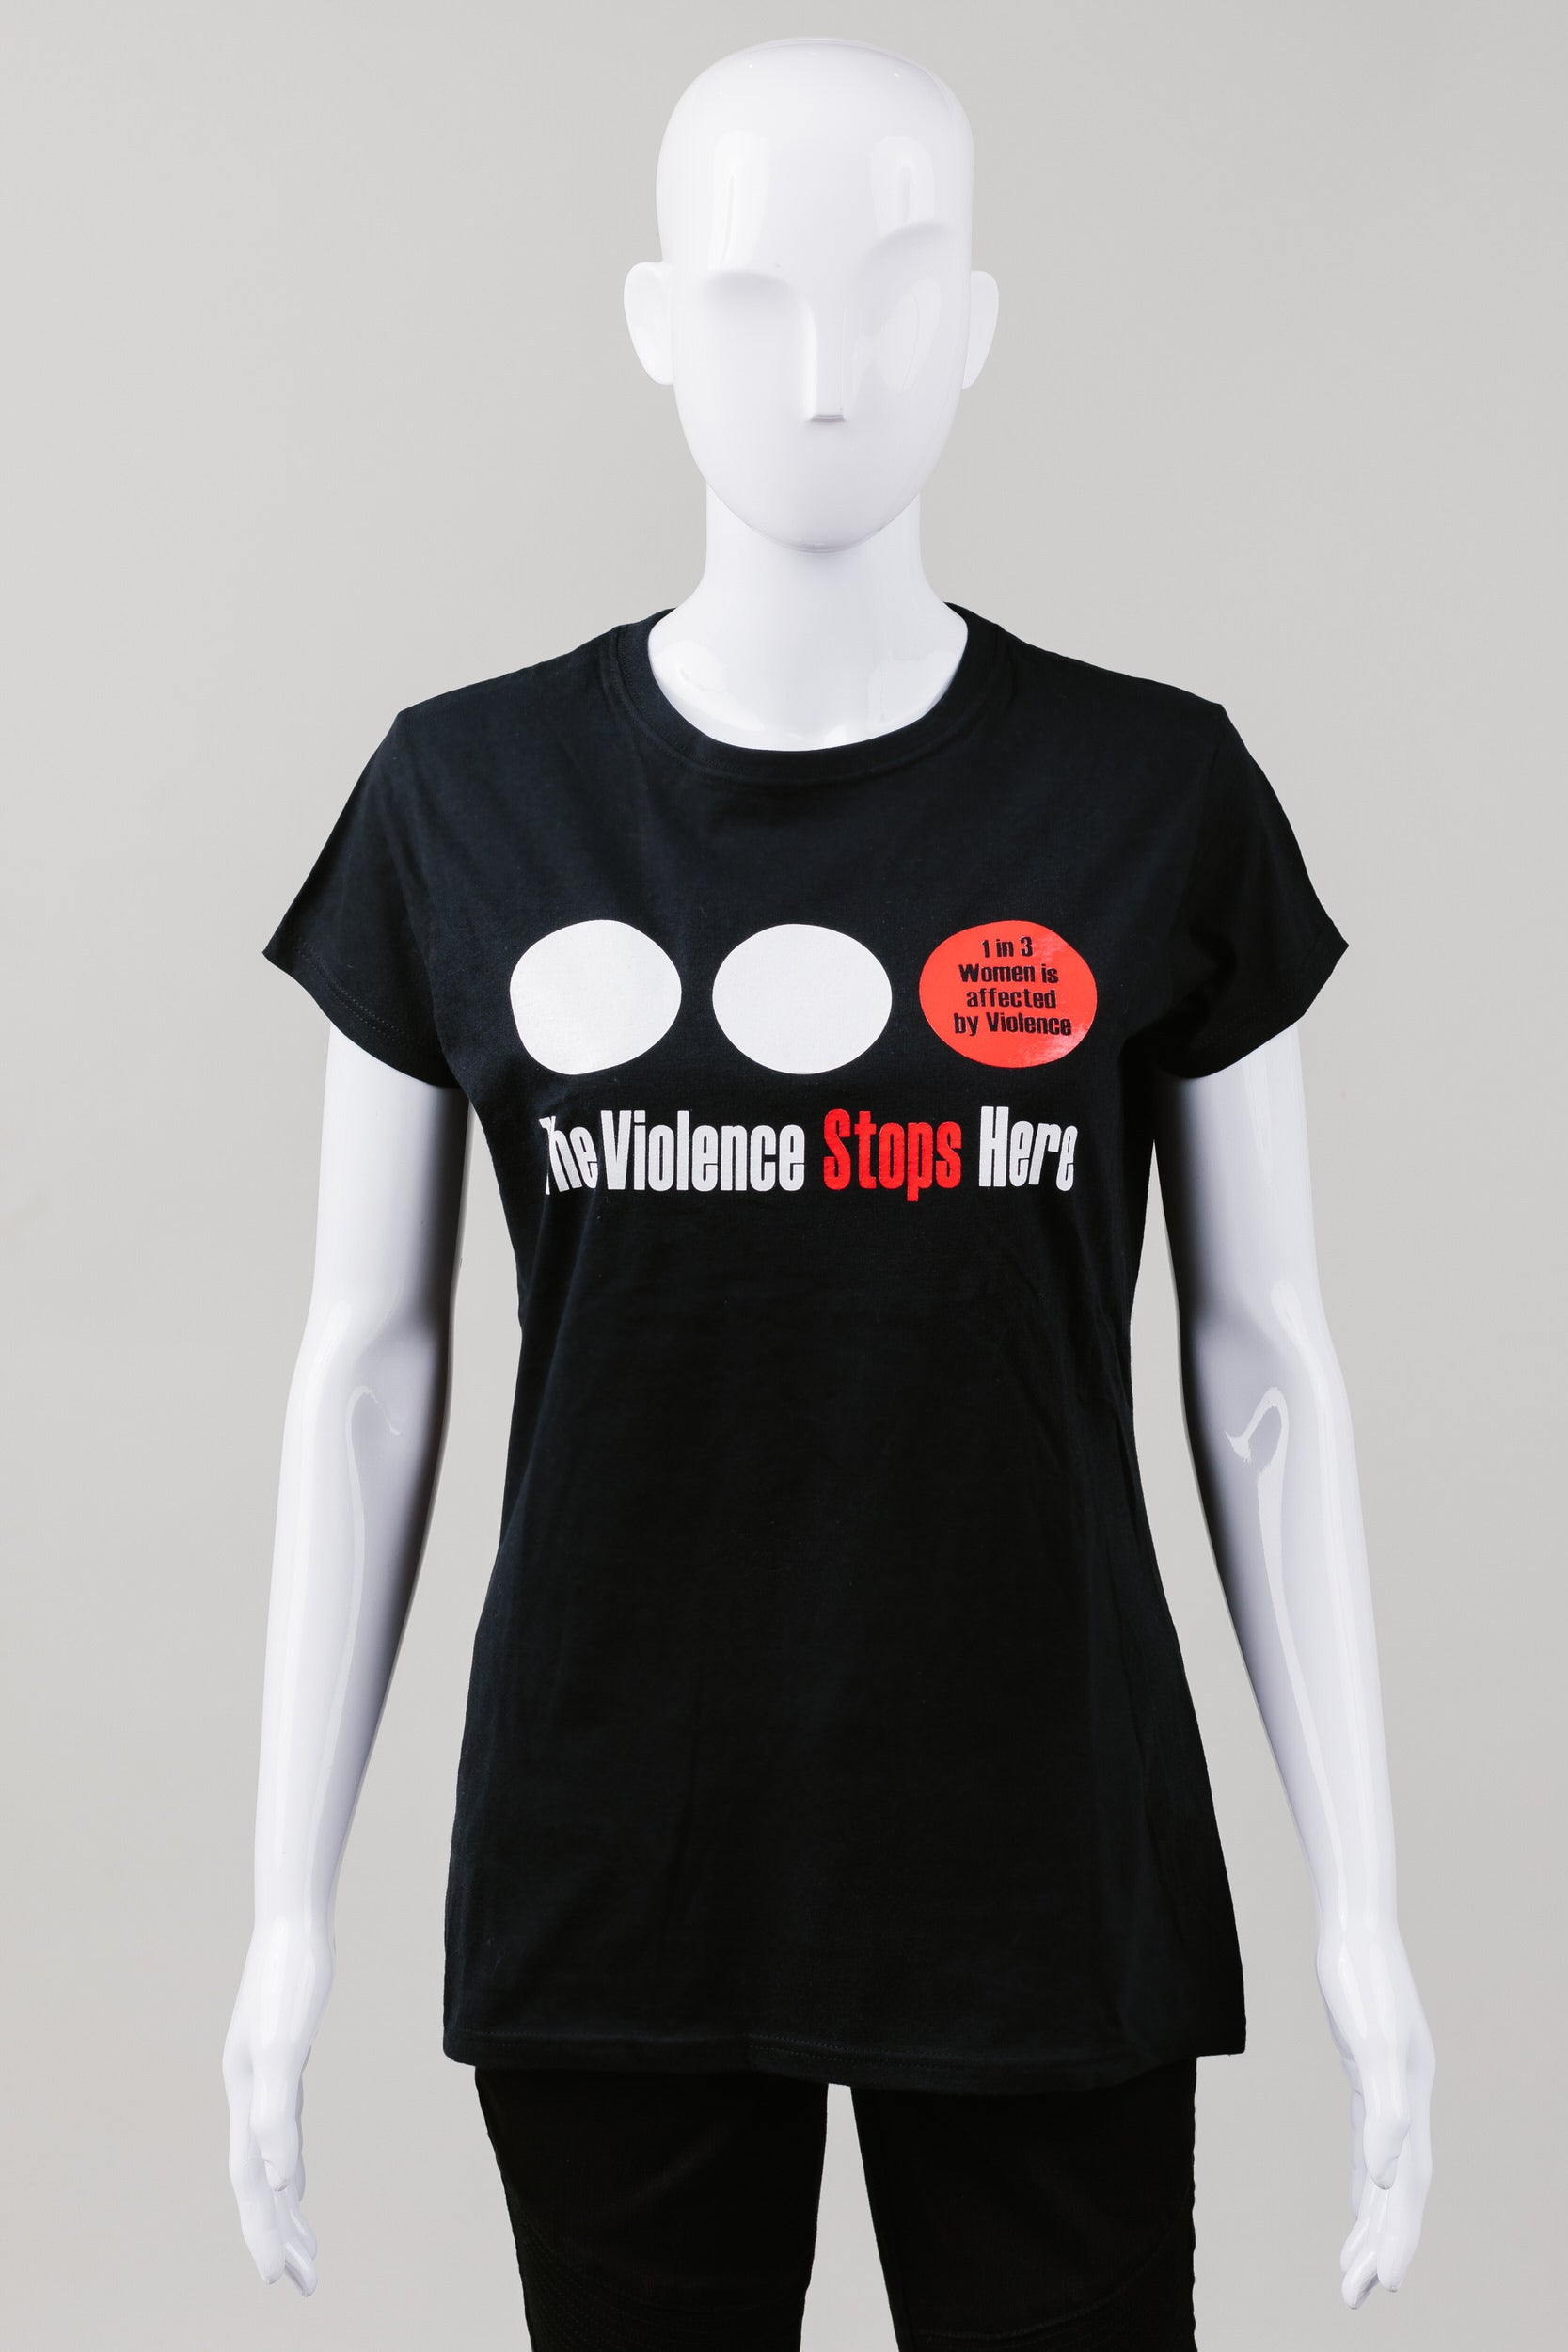 BWSS The Violence Stops Here t-shirt